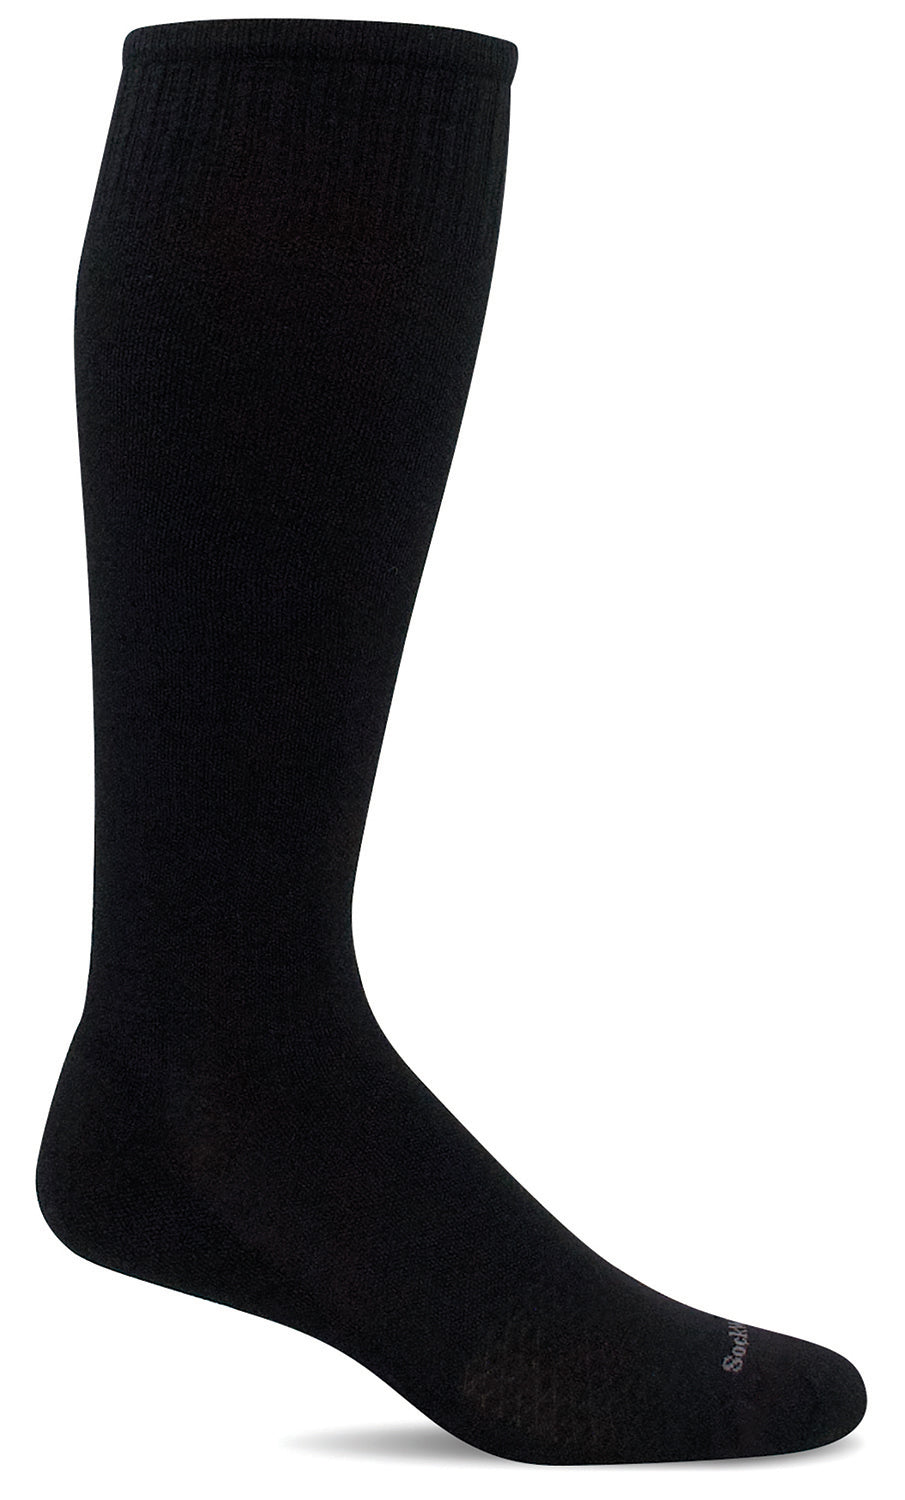 Featherweight Knee-High - Black Moderate Compression (15-20mmHg)